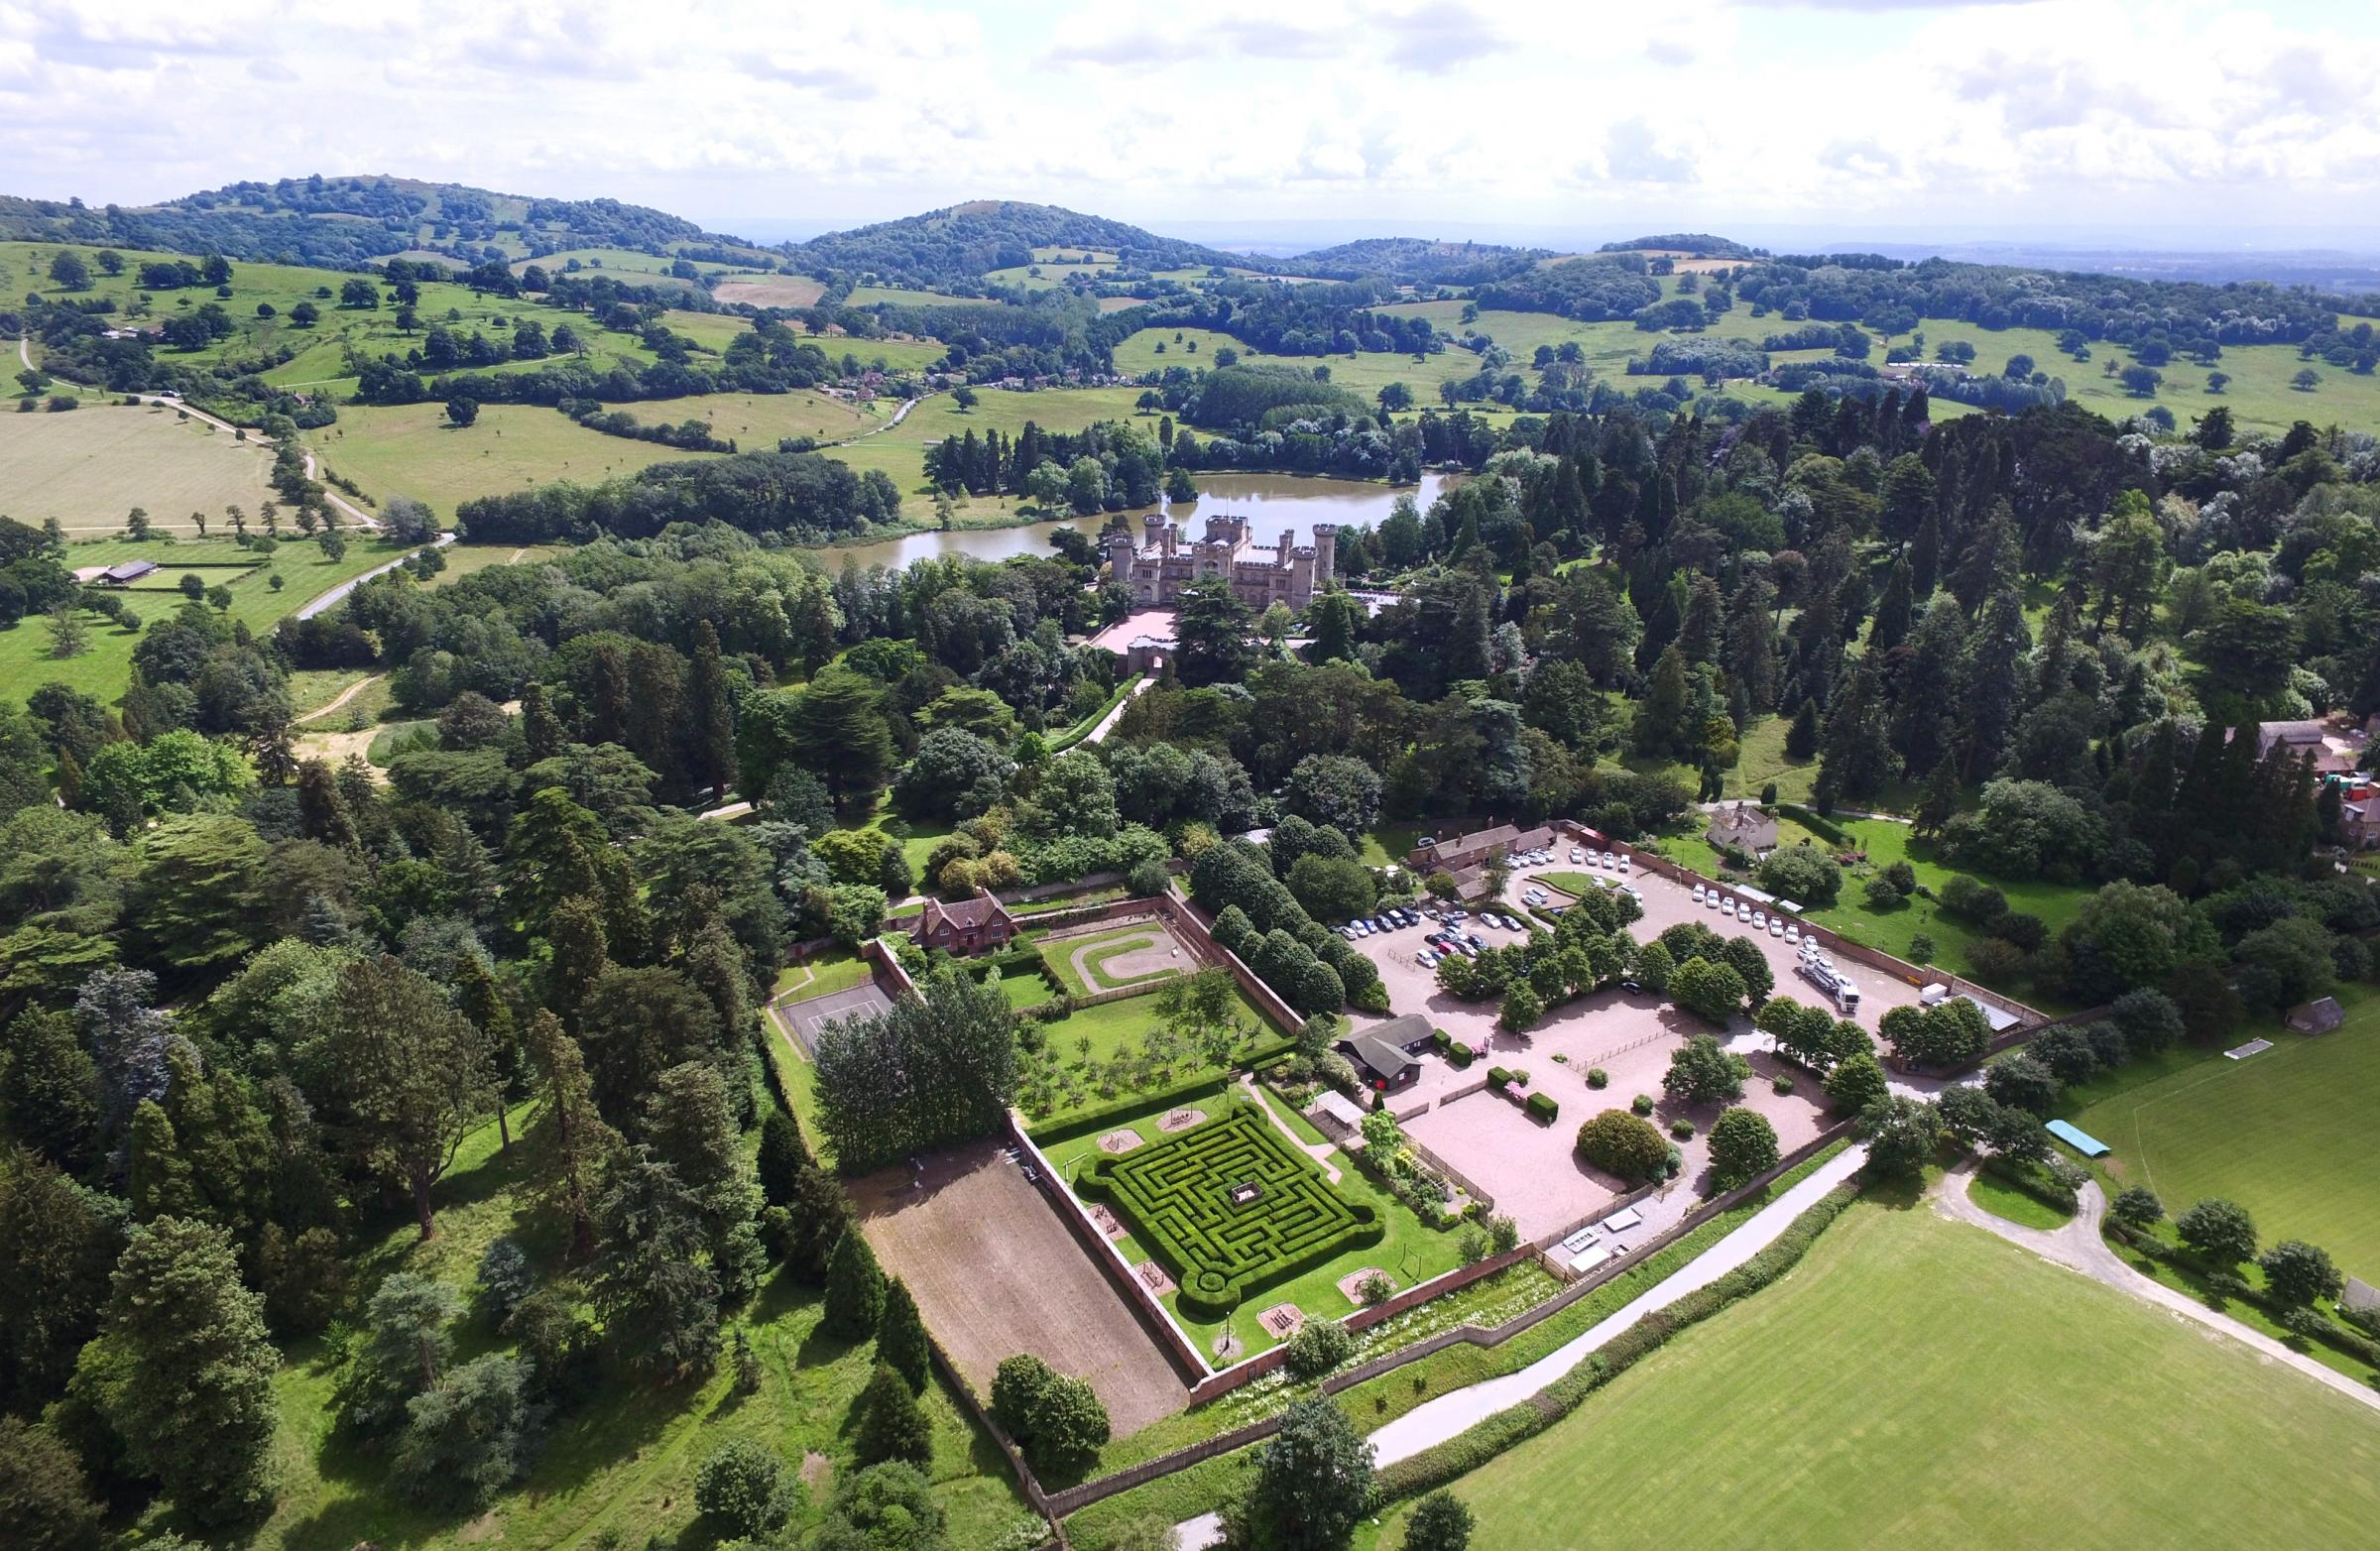 The impressive grounds at Eastnor Castle will host a weekend dedicated to vintage fun